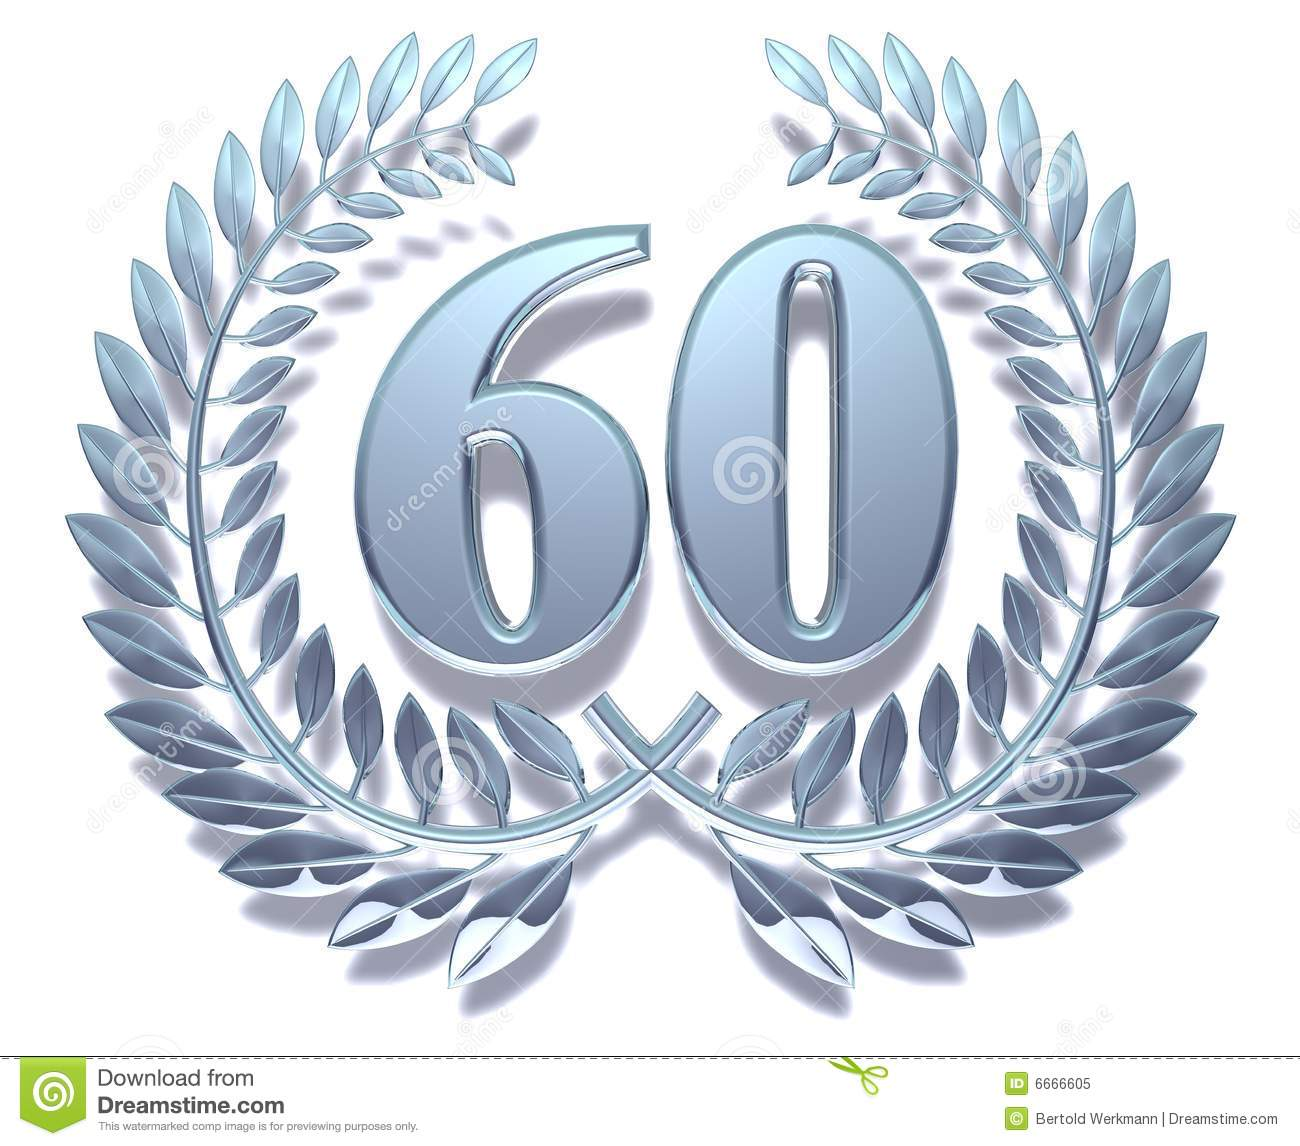 Number 60 Clipart Laurel wreath 60 royalty free